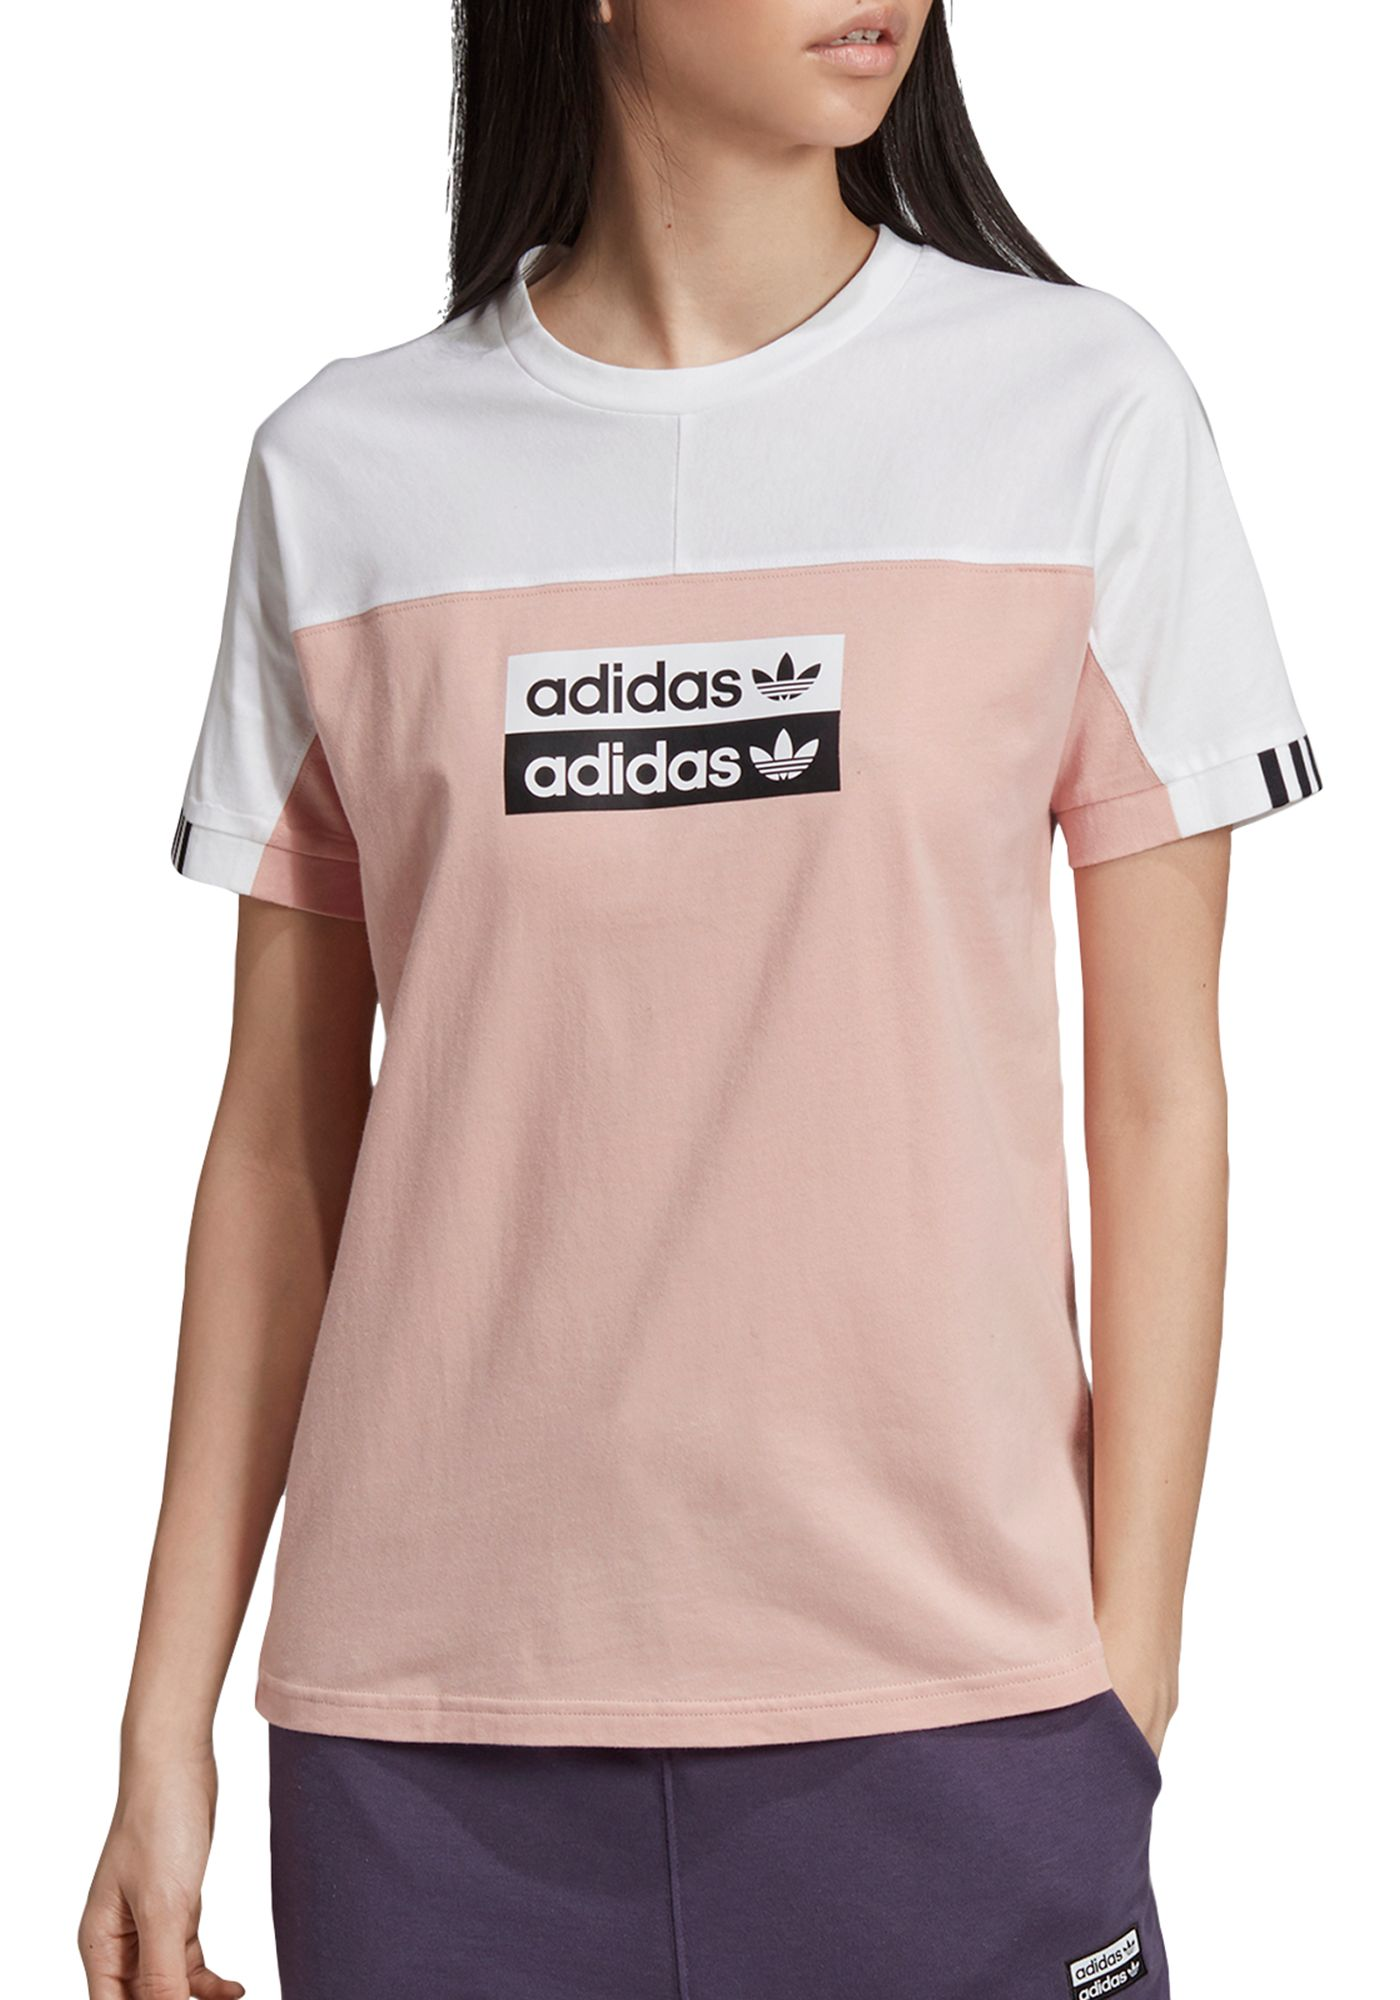 adidas Originals Women's Vocal T-Shirt